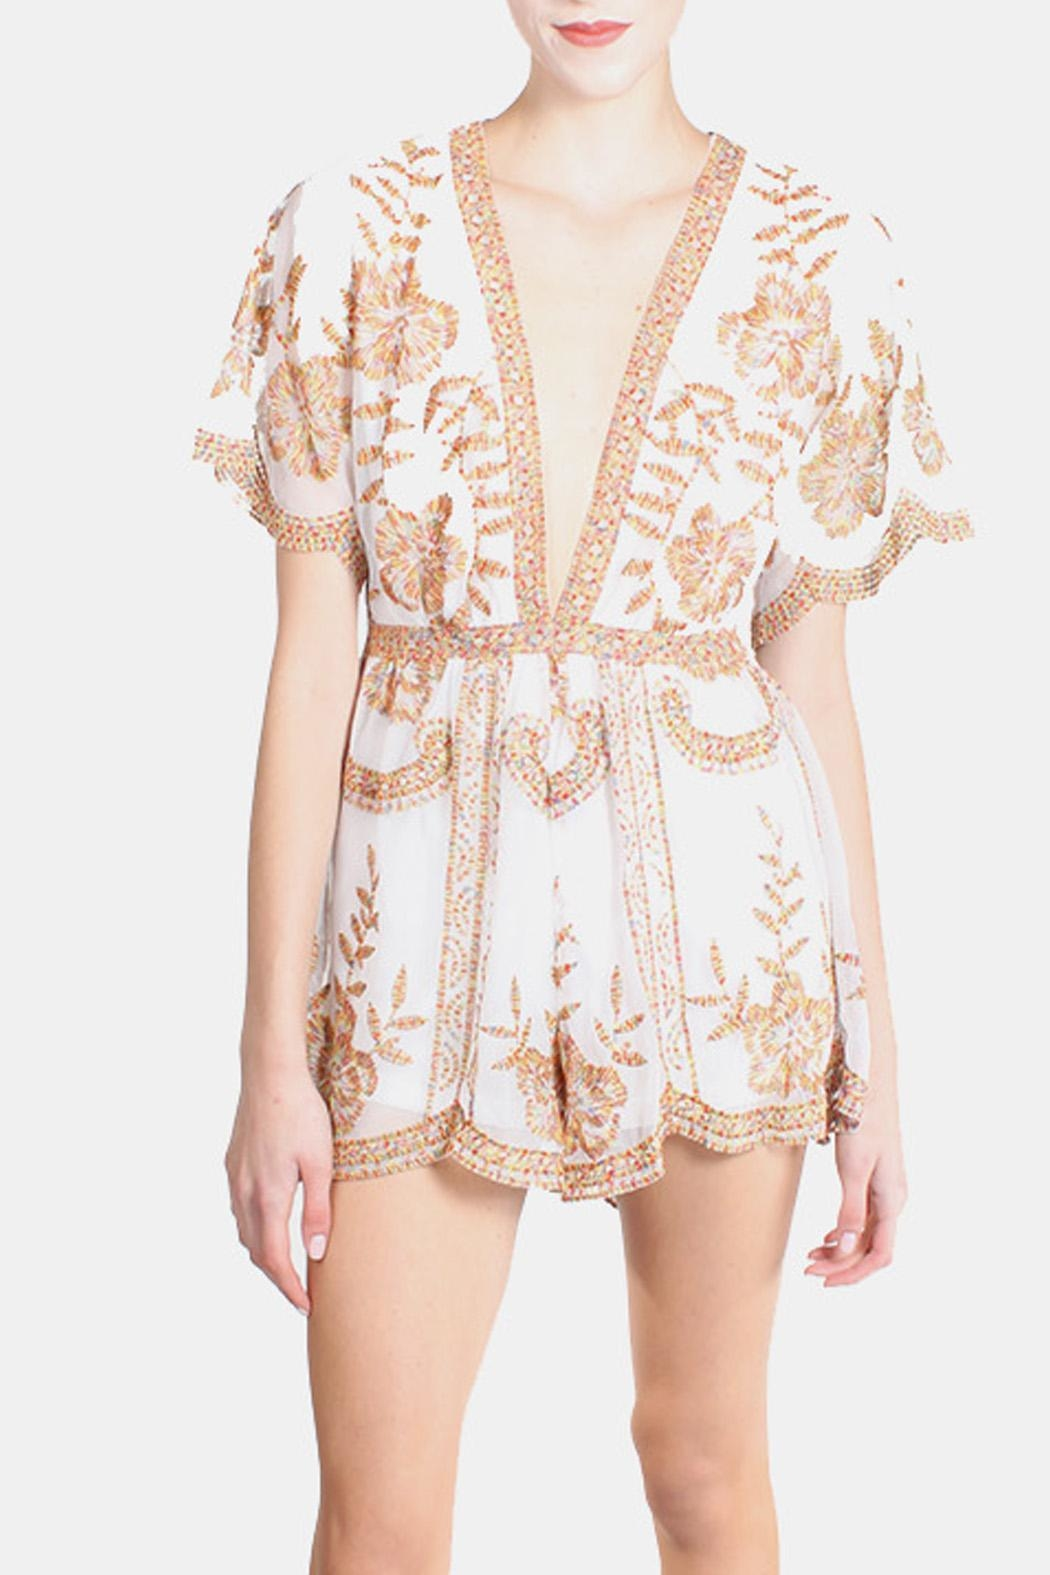 d52b9ce82d1 Honey Punch Multicolored Butterfly Lace Romper from Los Angeles by ...